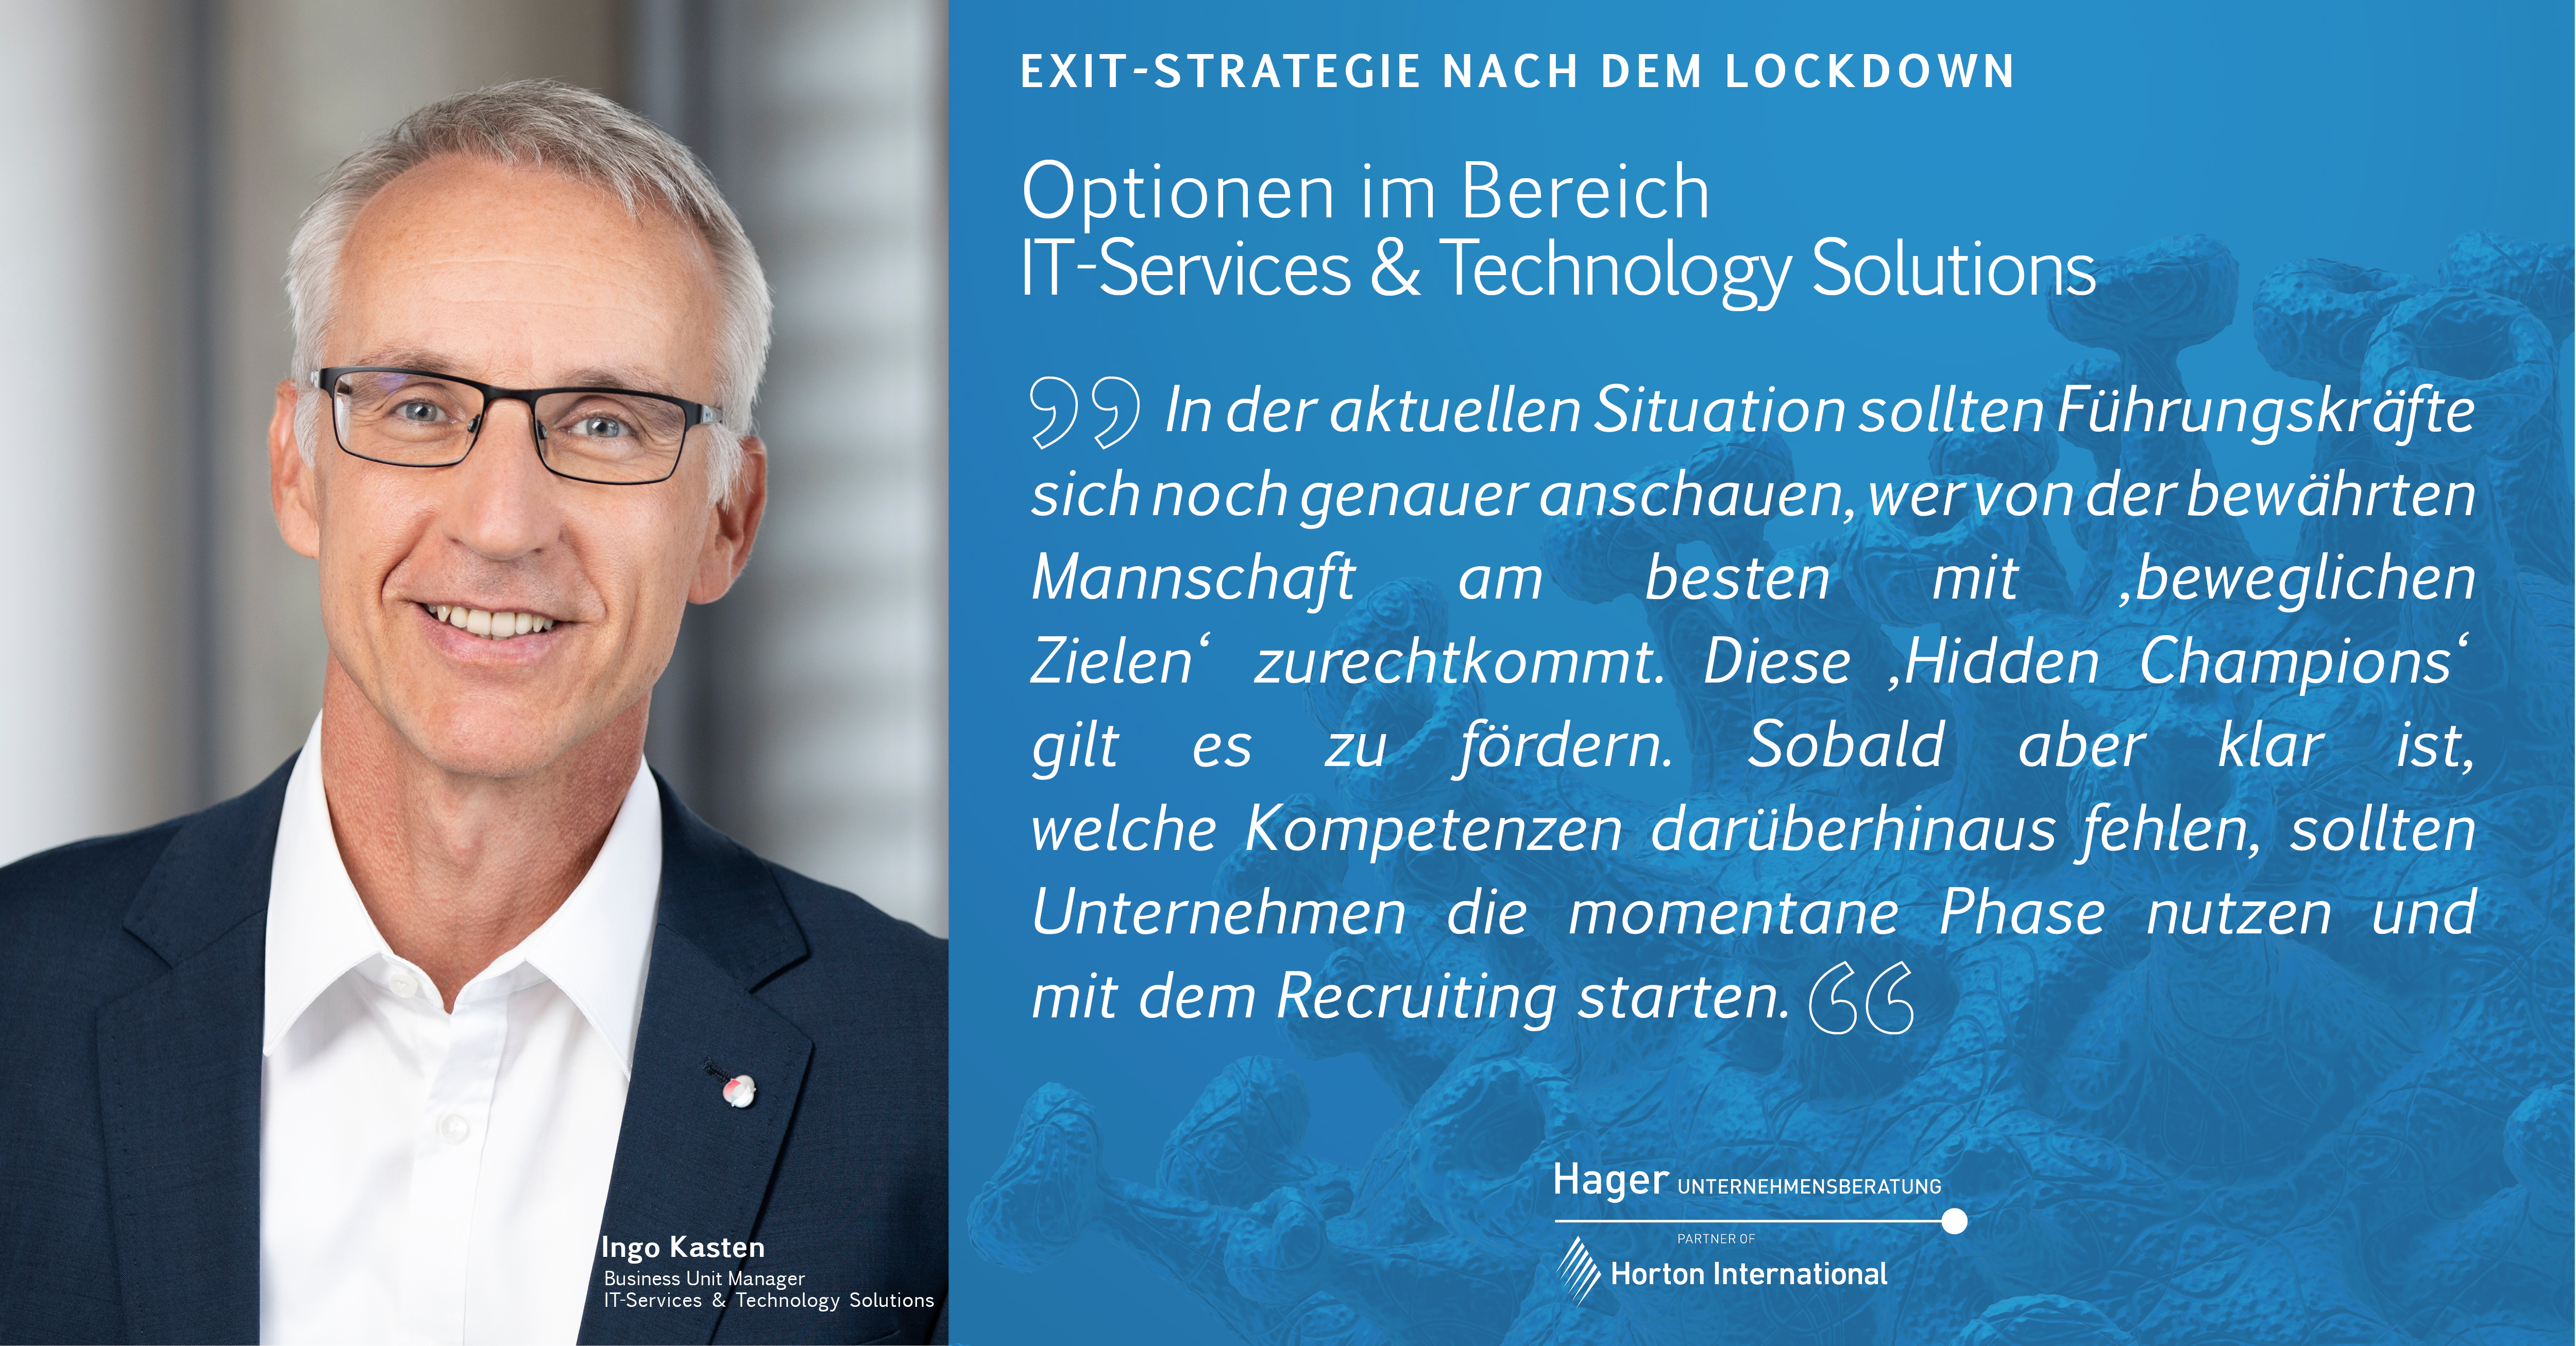 Exit-Strategie nach dem Lockdown - IT Services & Technology Solutions